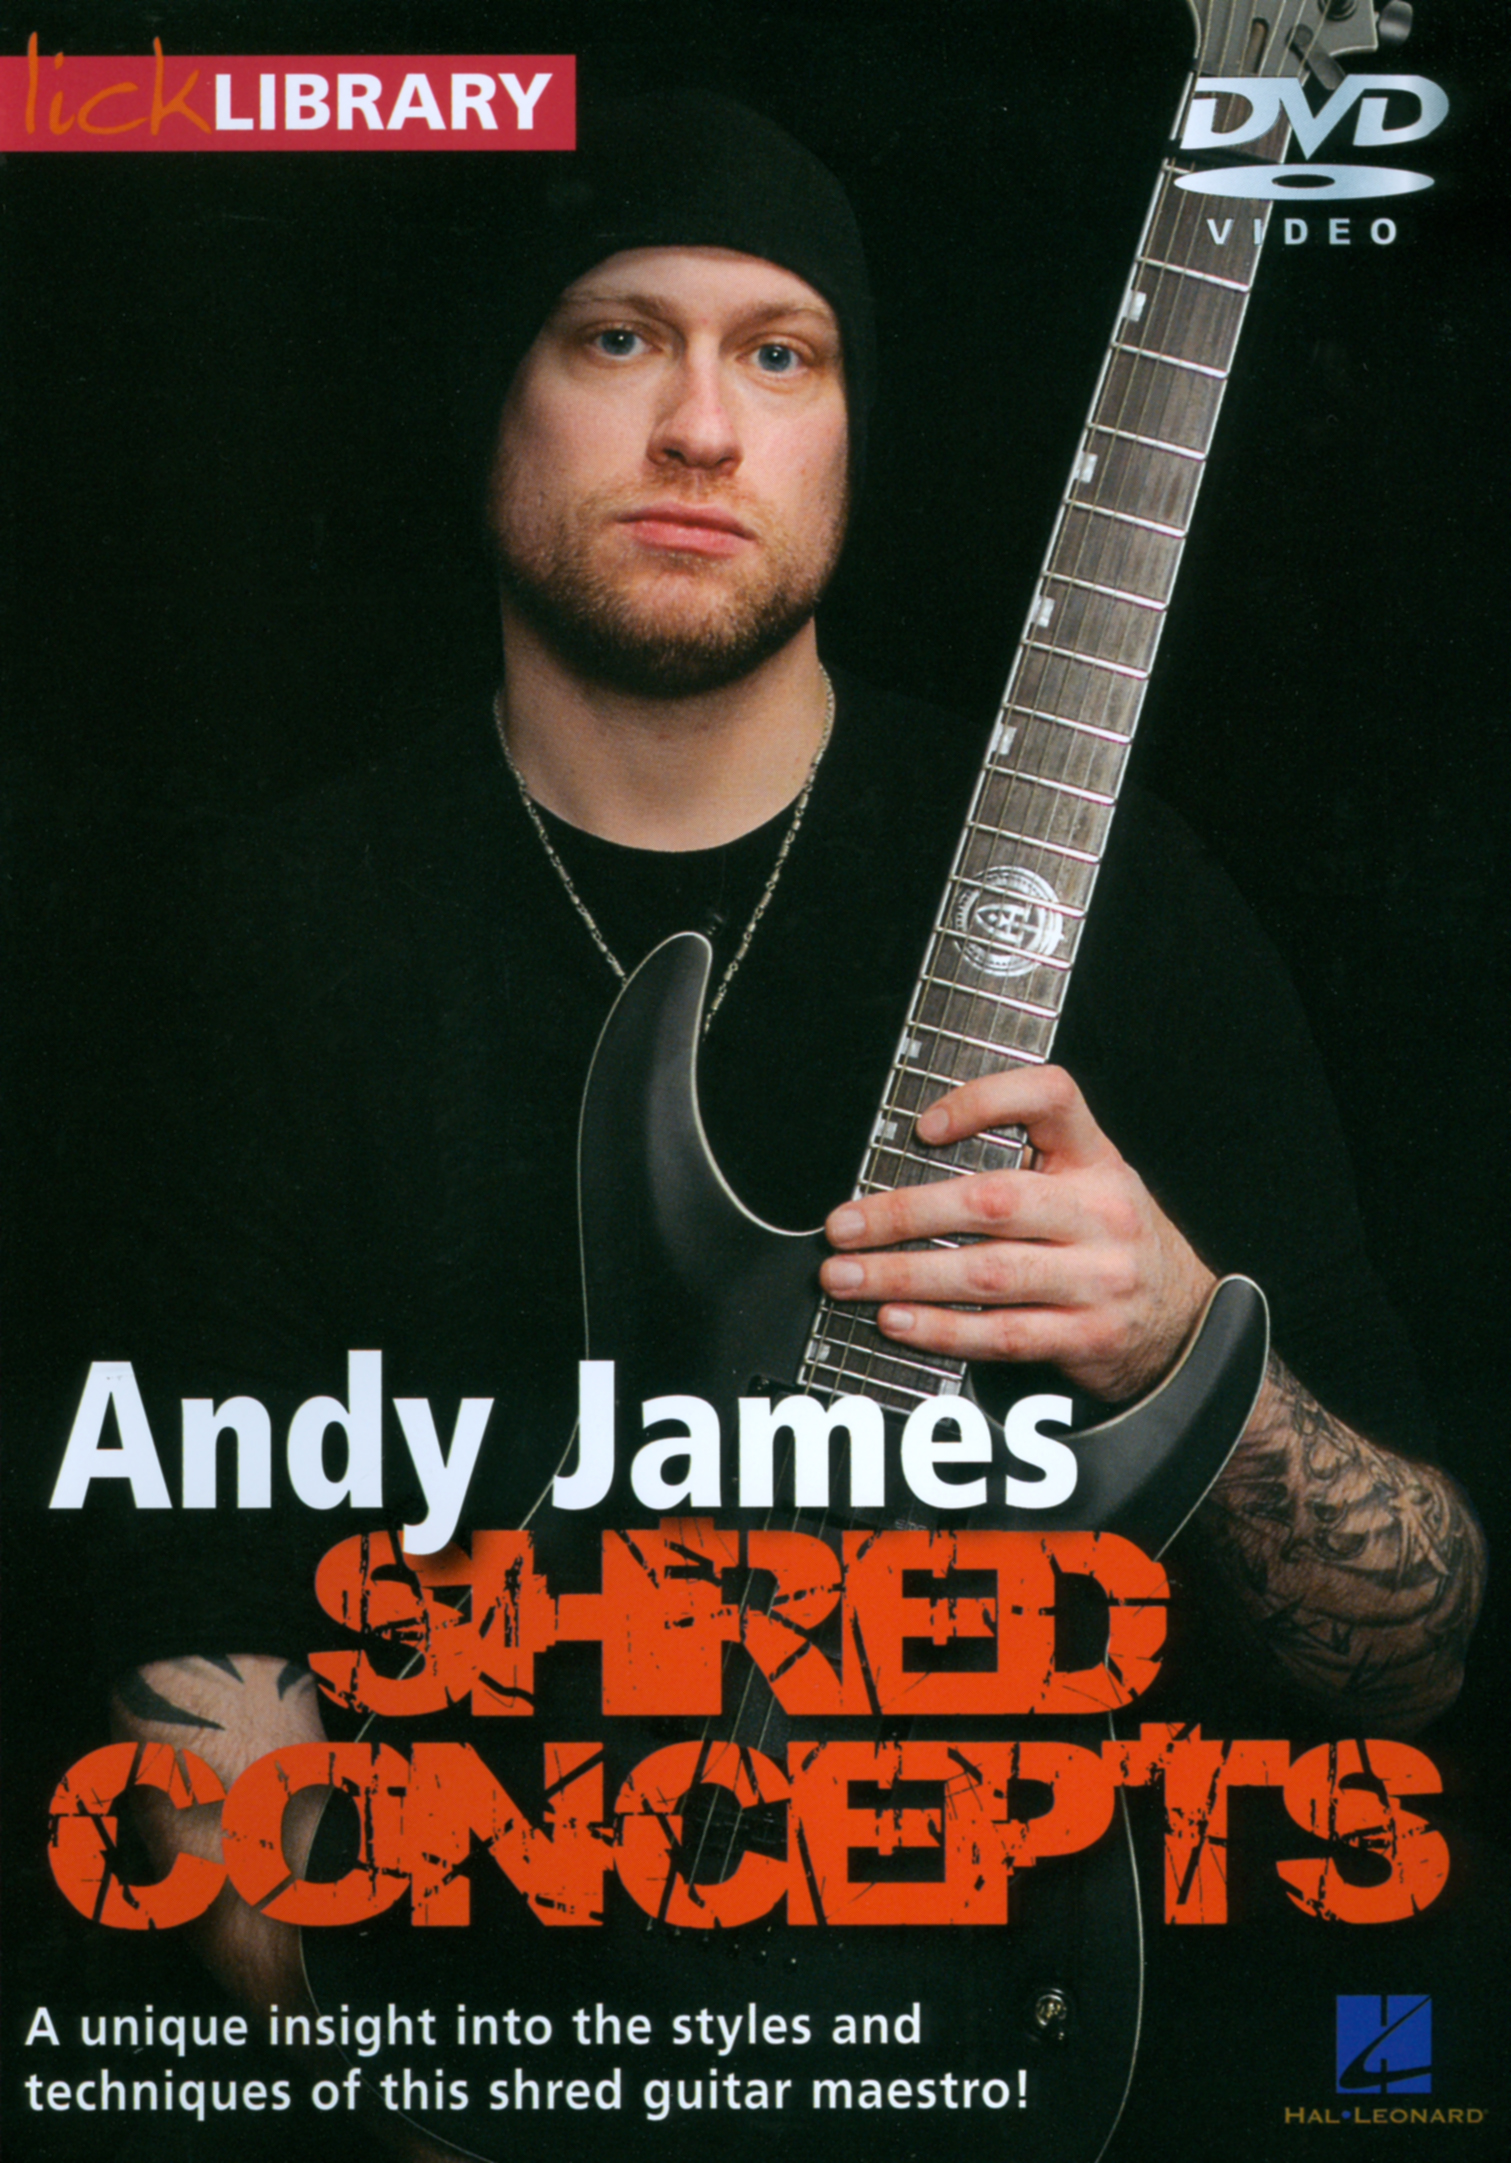 Lick Library: Andy James - Shred Concepts